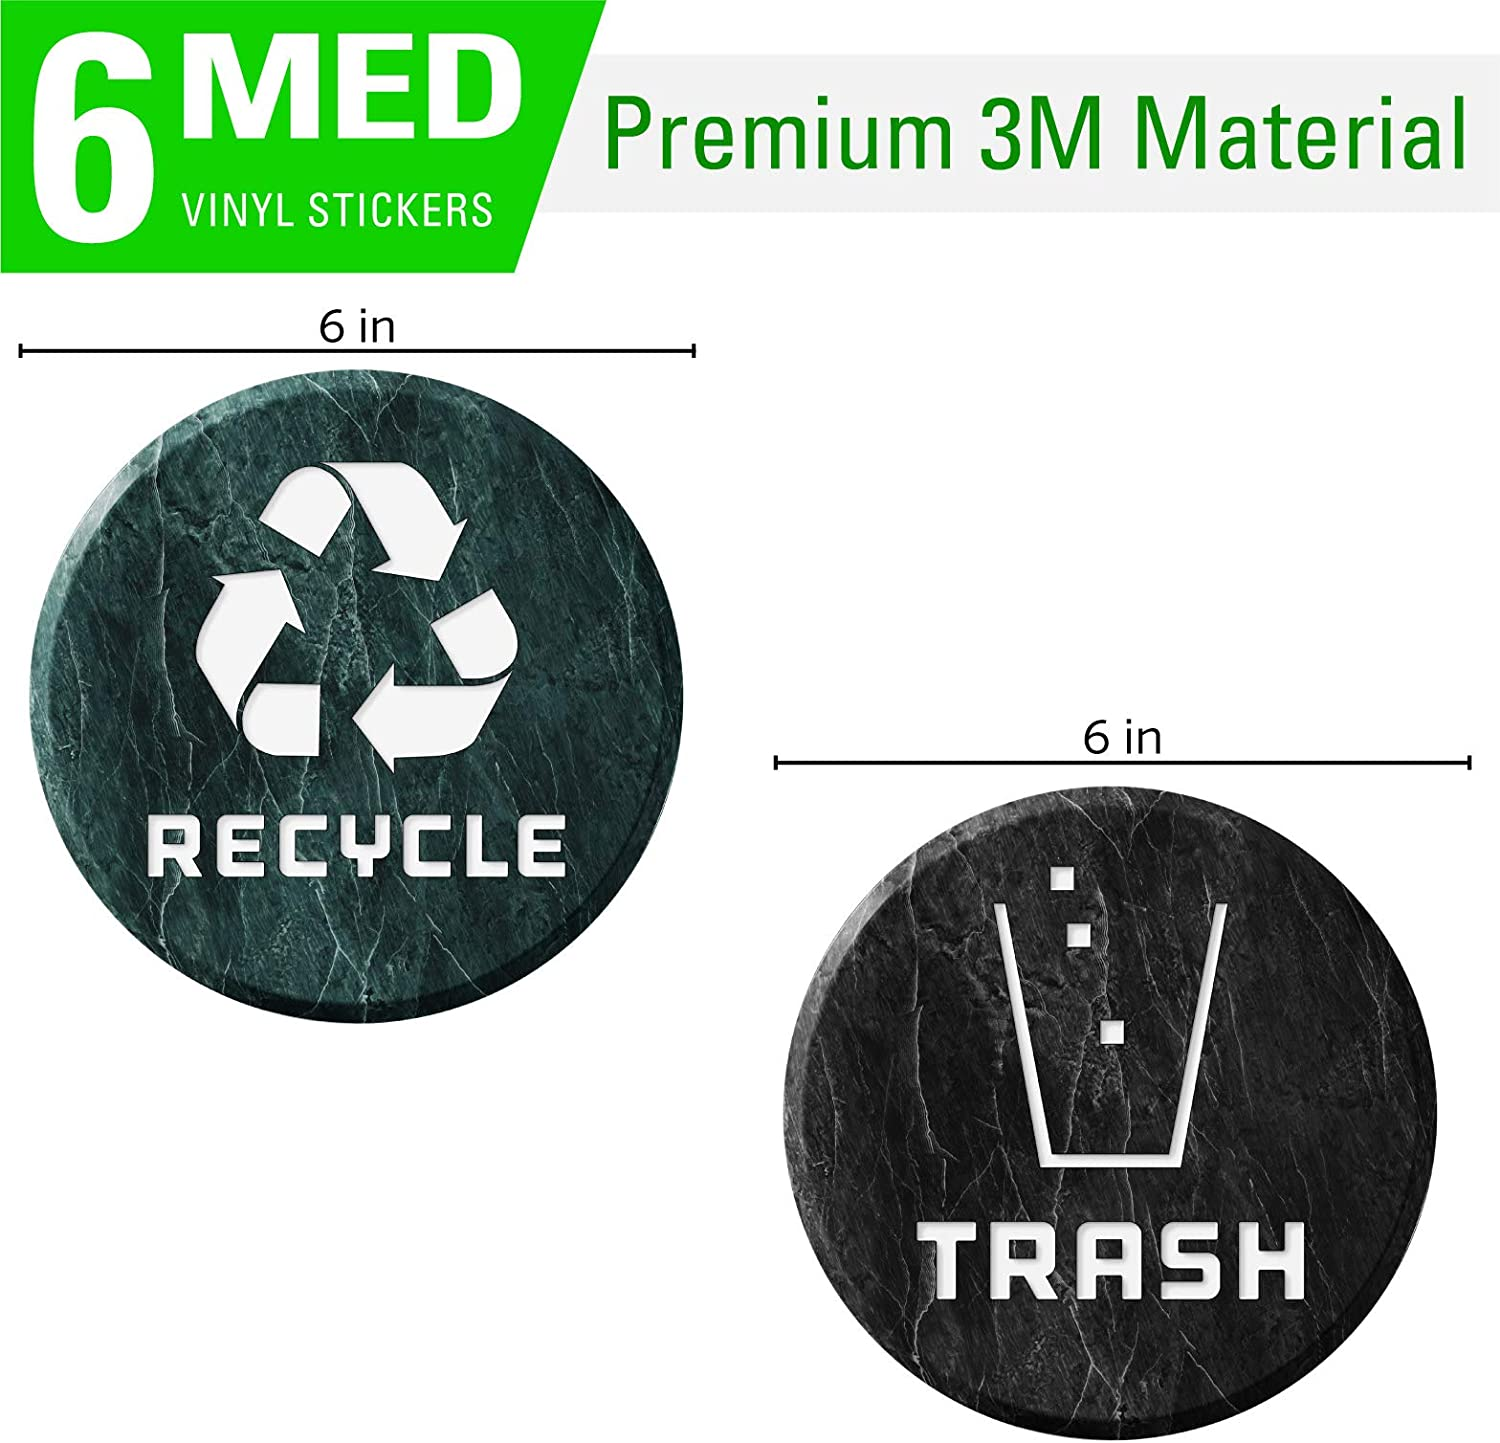 Recycle Logo and Trash can Sticker to Organize Your Trash 4in x 4in, Marble-04 6 Pack 4in x 4in Garbage containers and Recycle Bins for Trash cans Premium Vinyl Decal